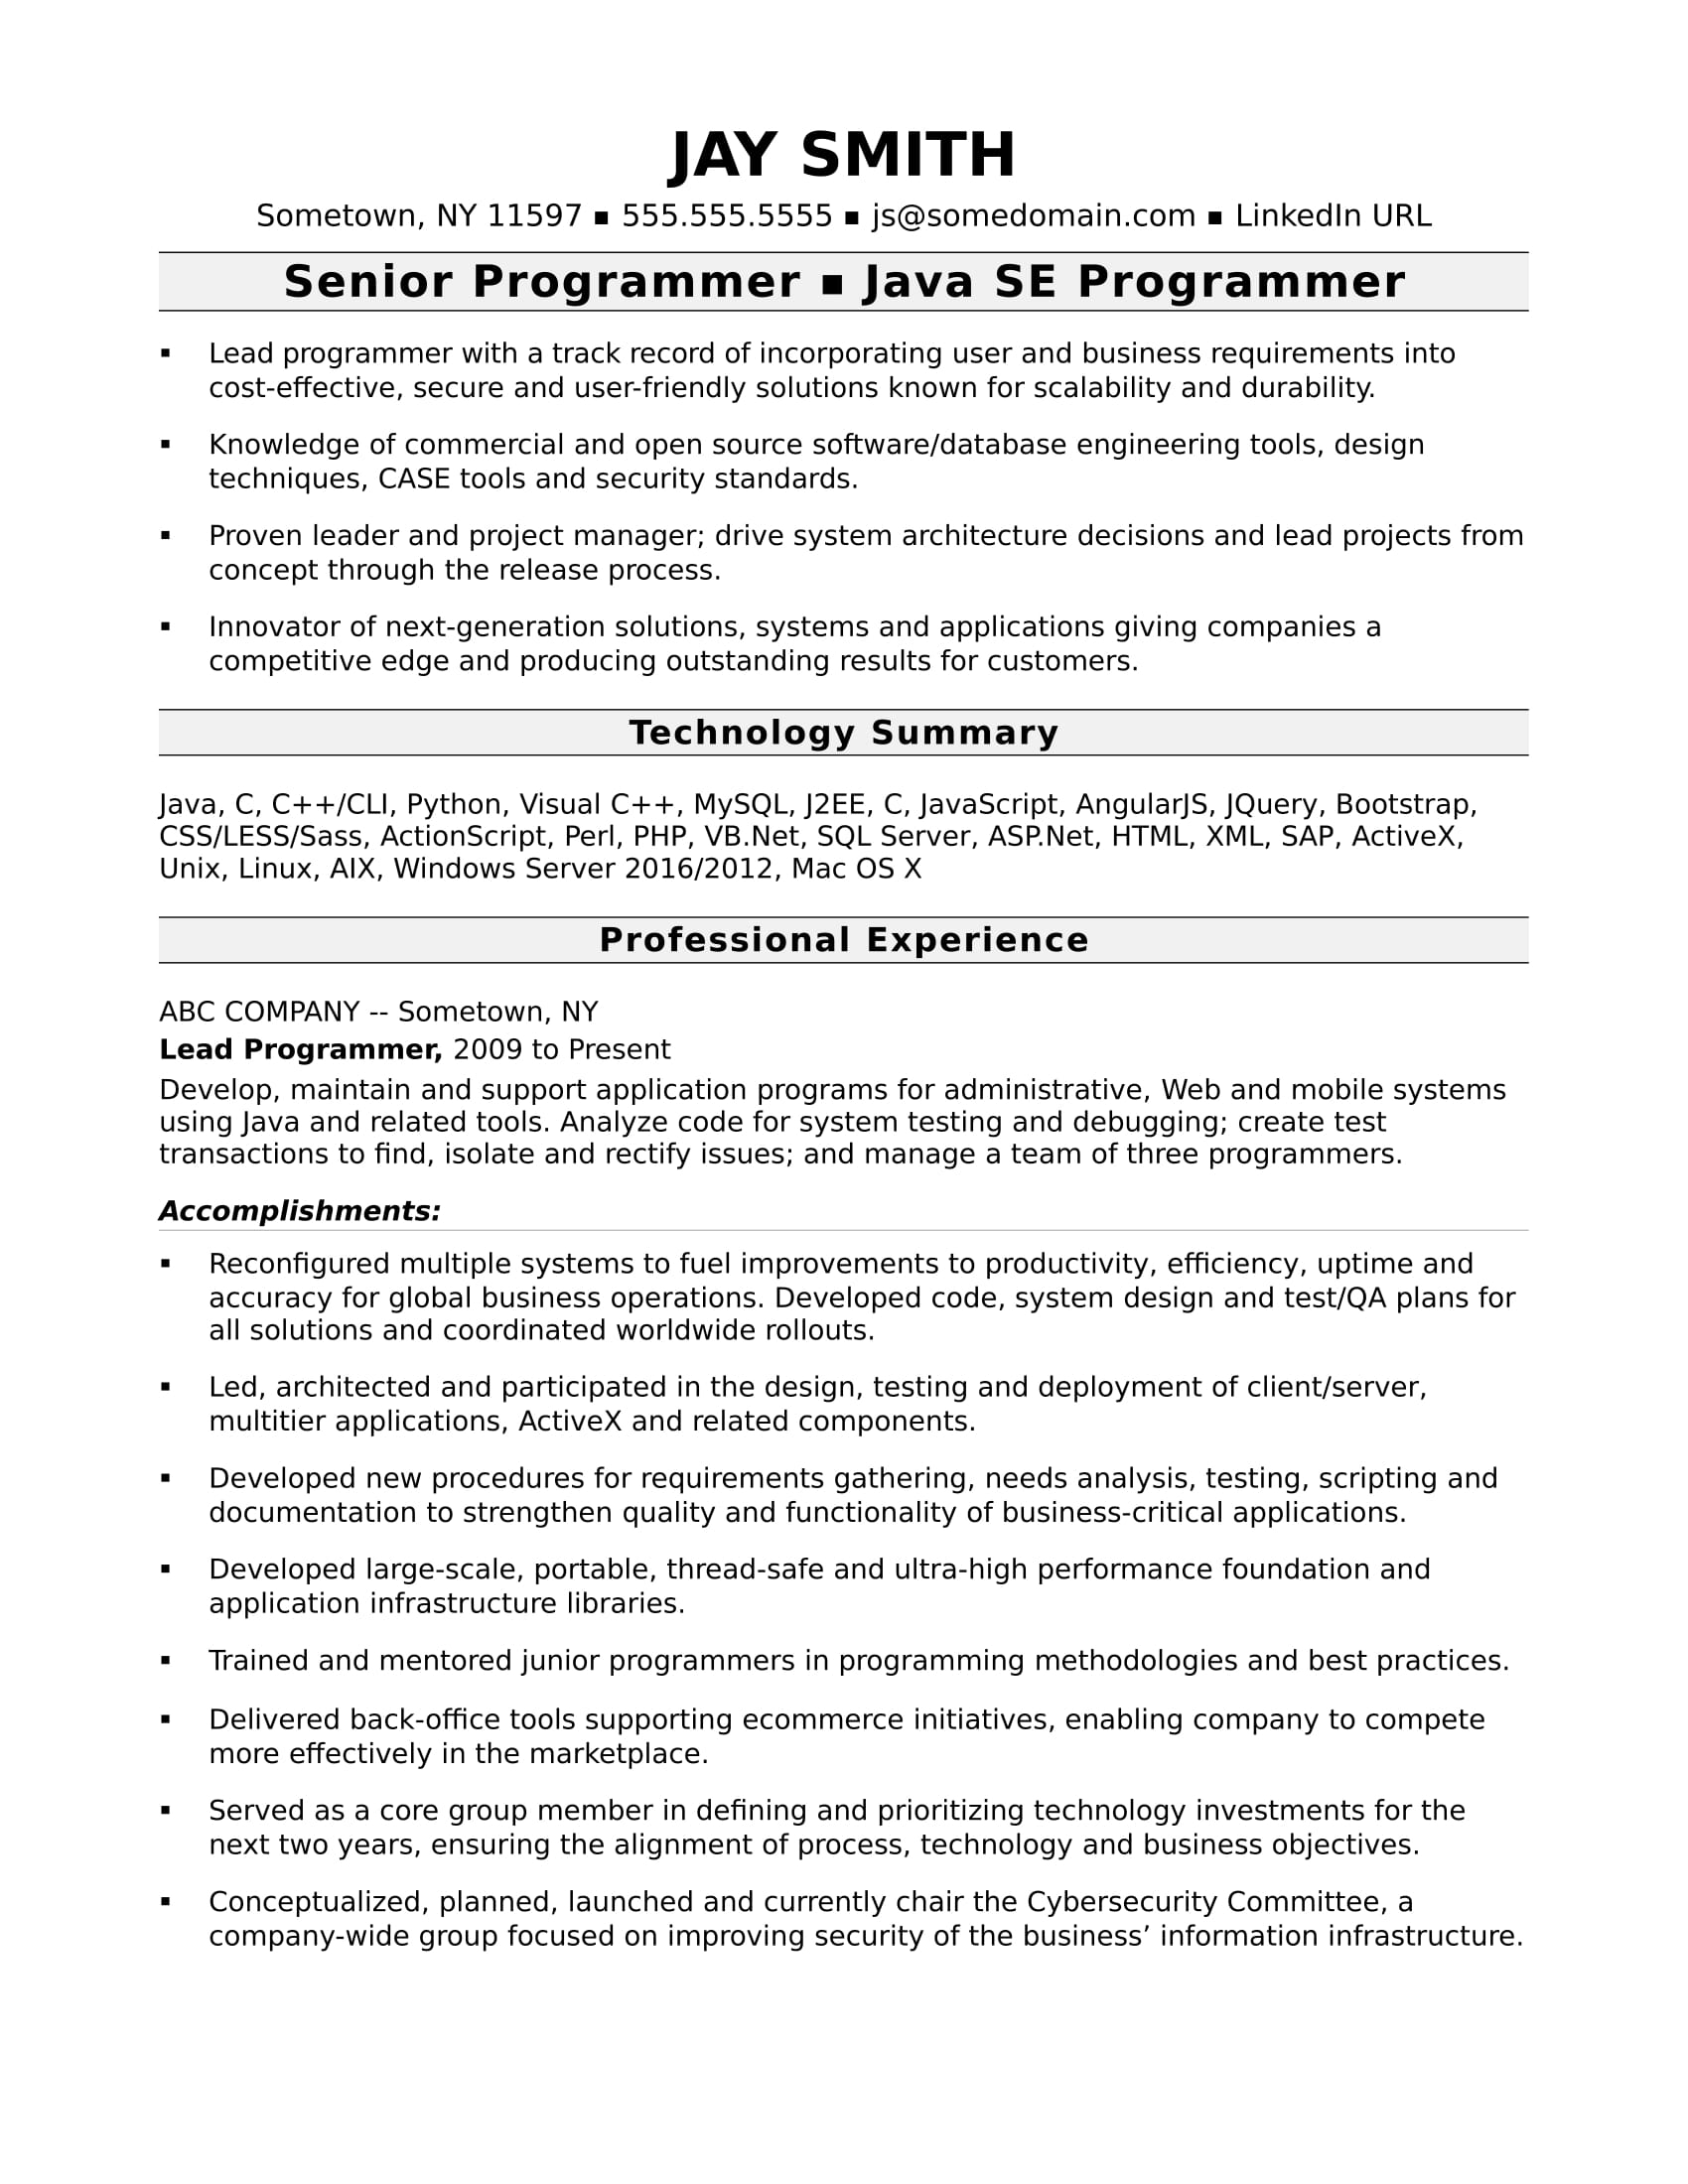 Sample Resume for an Experienced Computer Programmer | Monster.com